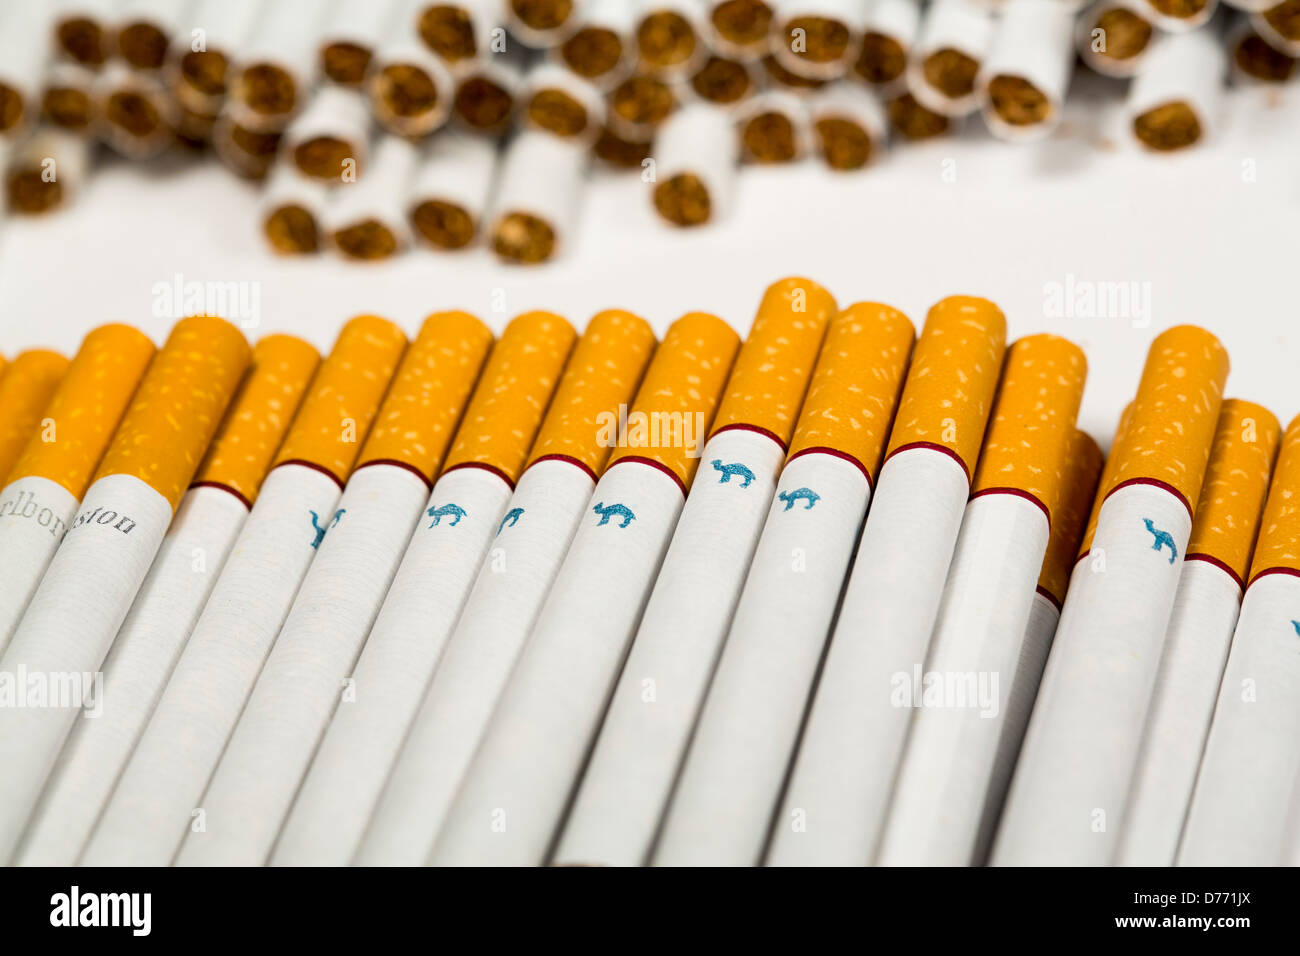 Cigarettes Marlboro without tobacco